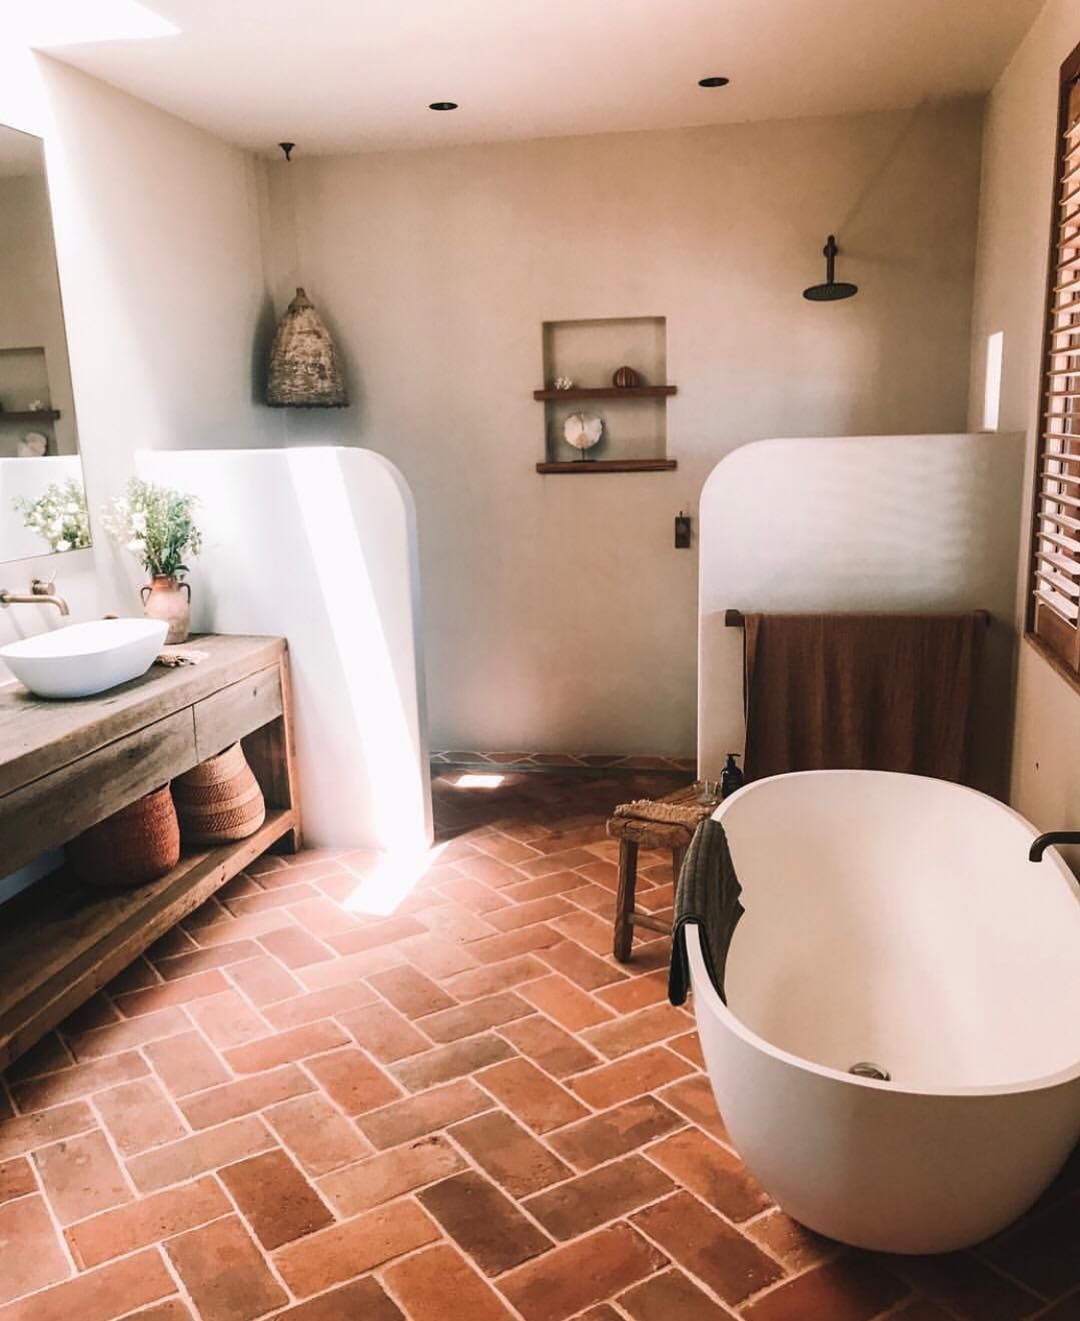 Josh And Elyse On Instagram Obsessed With These Terracotta Bricks For The Floor Rendered Walls Cu In 2020 Spanish Style Bathrooms Bathroom Interior Bathroom Design